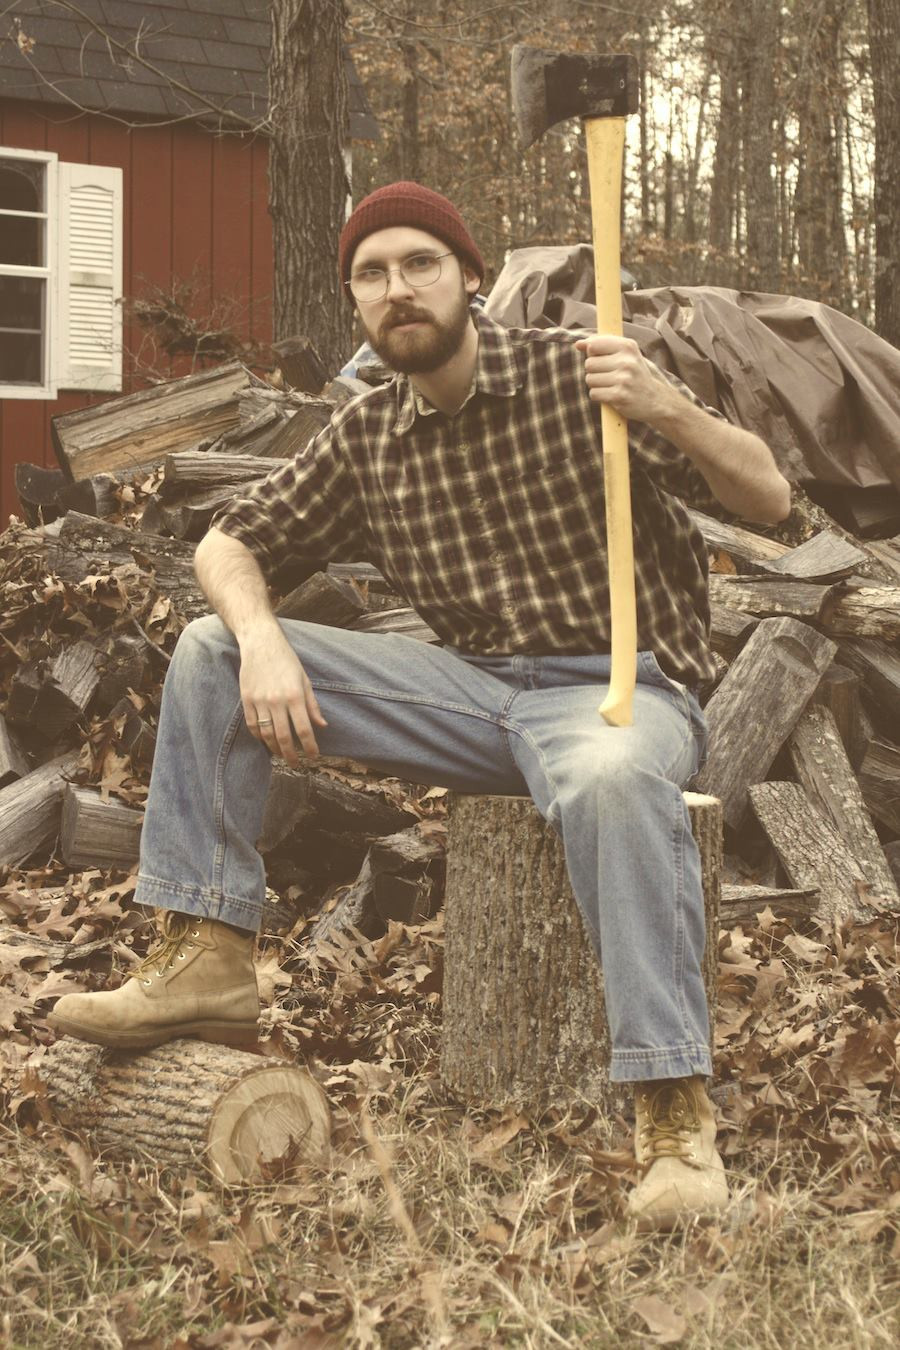 Chance sits on stump with axe in front of wood pile